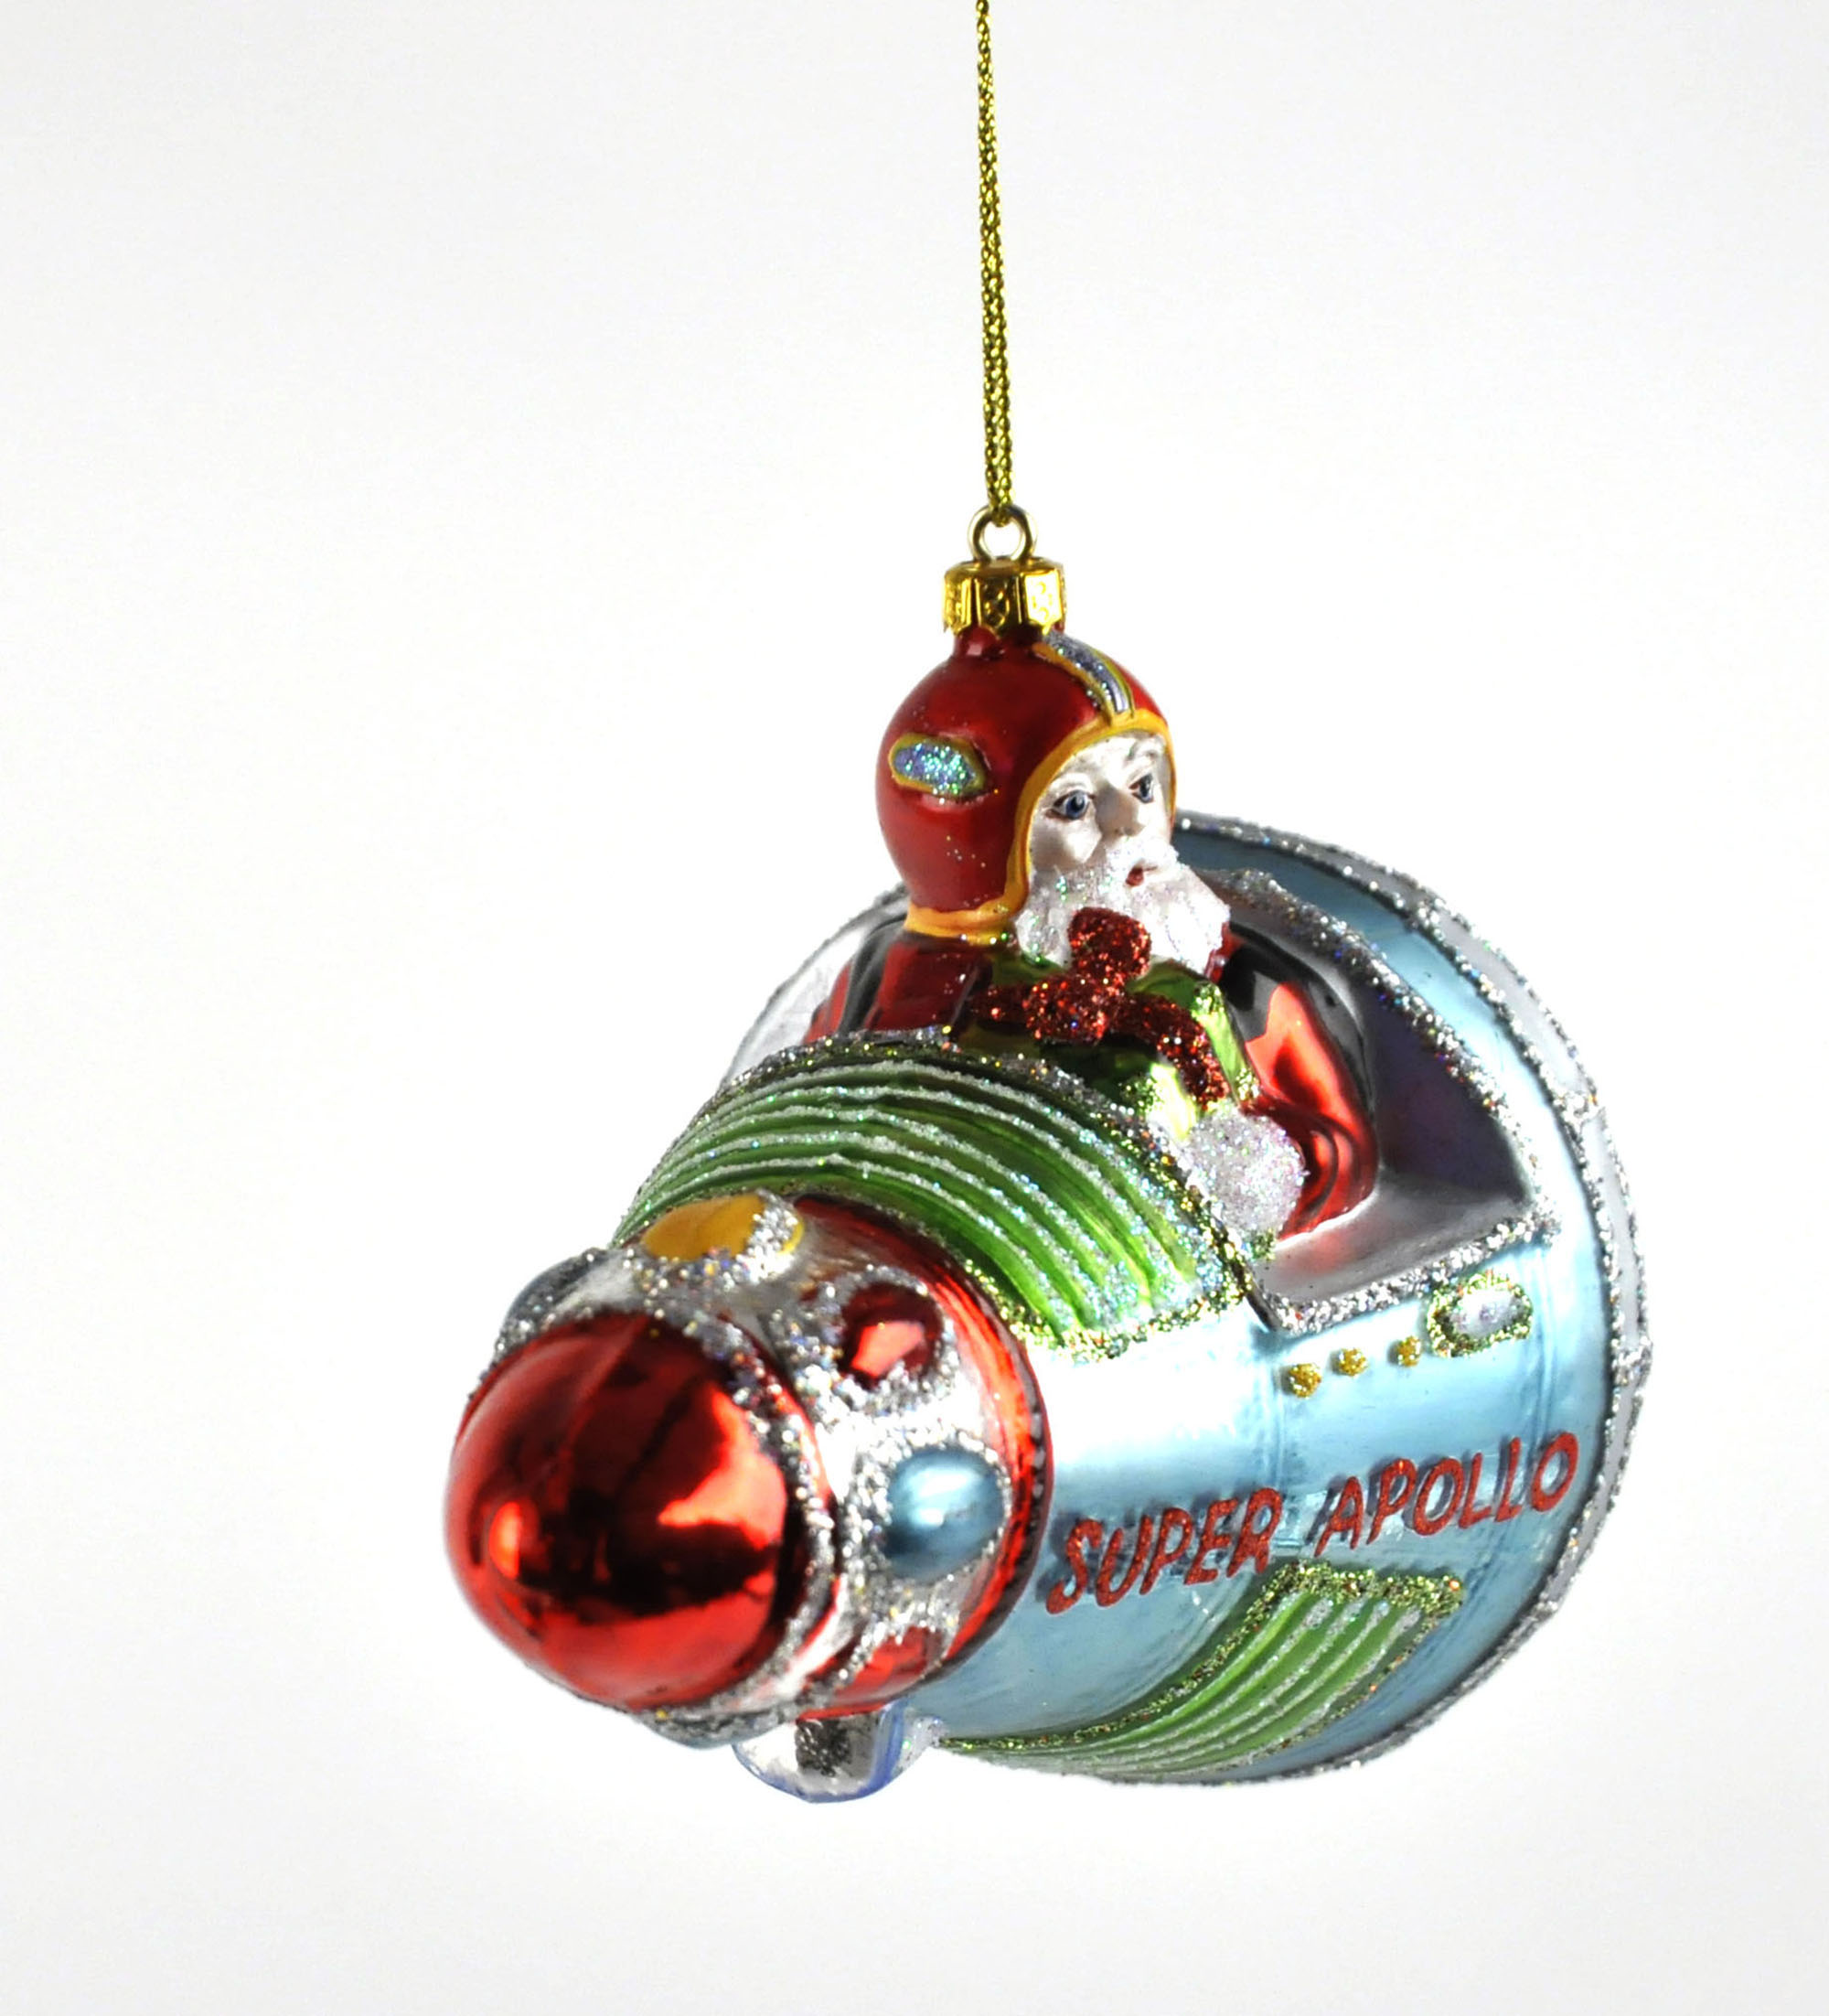 santa 39 s apollo space shuttle christmas bauble painted glass hanging decoration ebay. Black Bedroom Furniture Sets. Home Design Ideas